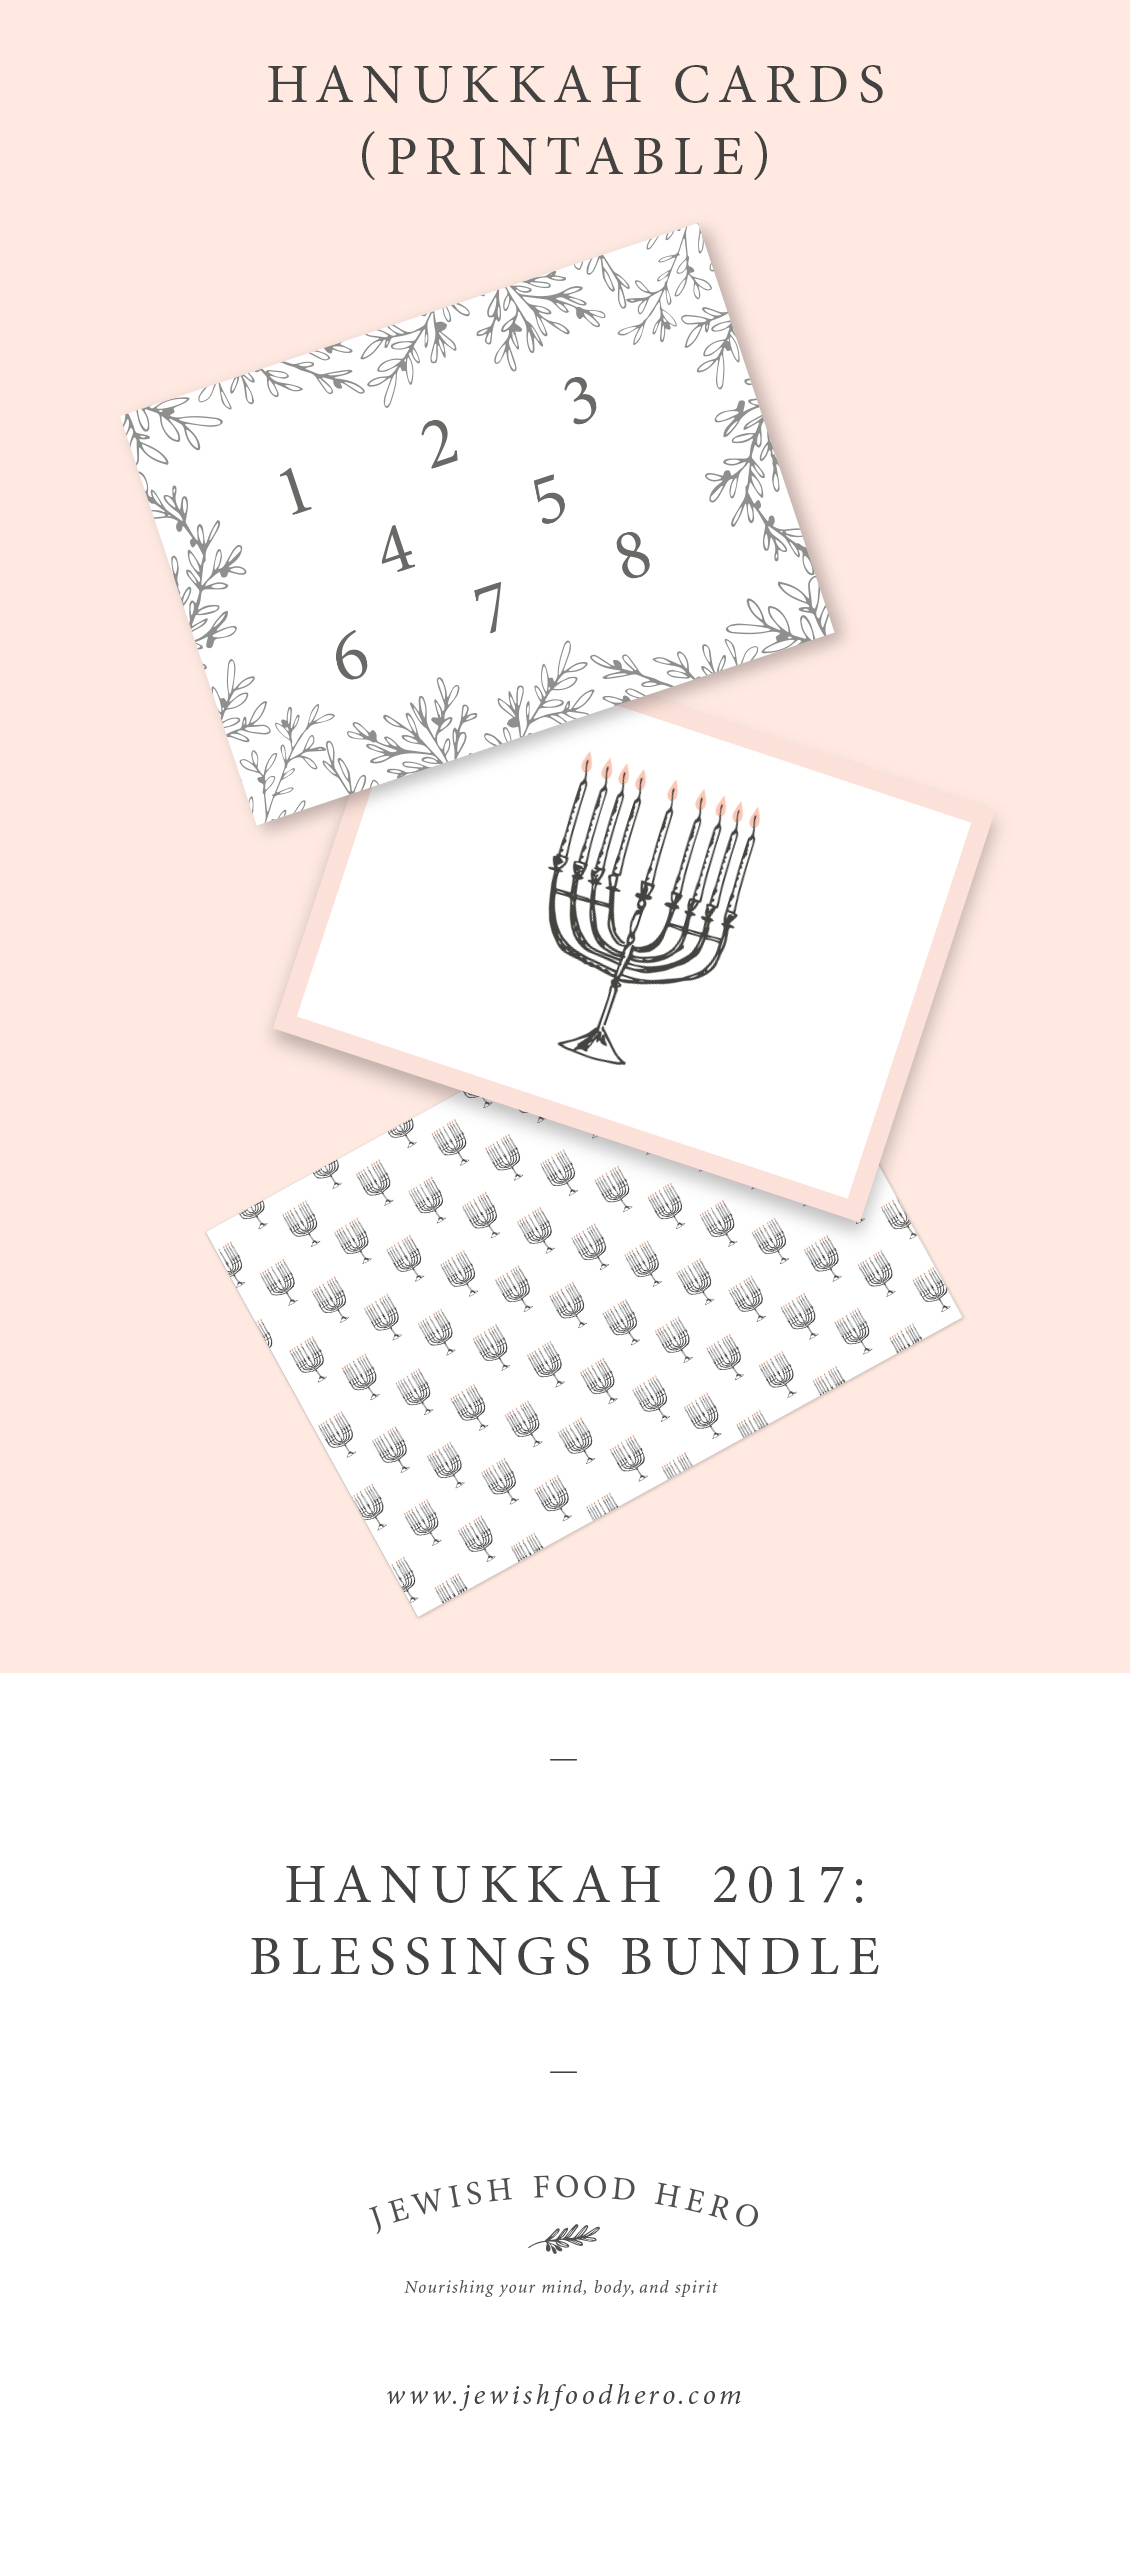 image relating to Dreidel Game Rules Printable called Printable Dreidel Guidance Offers of the Working day